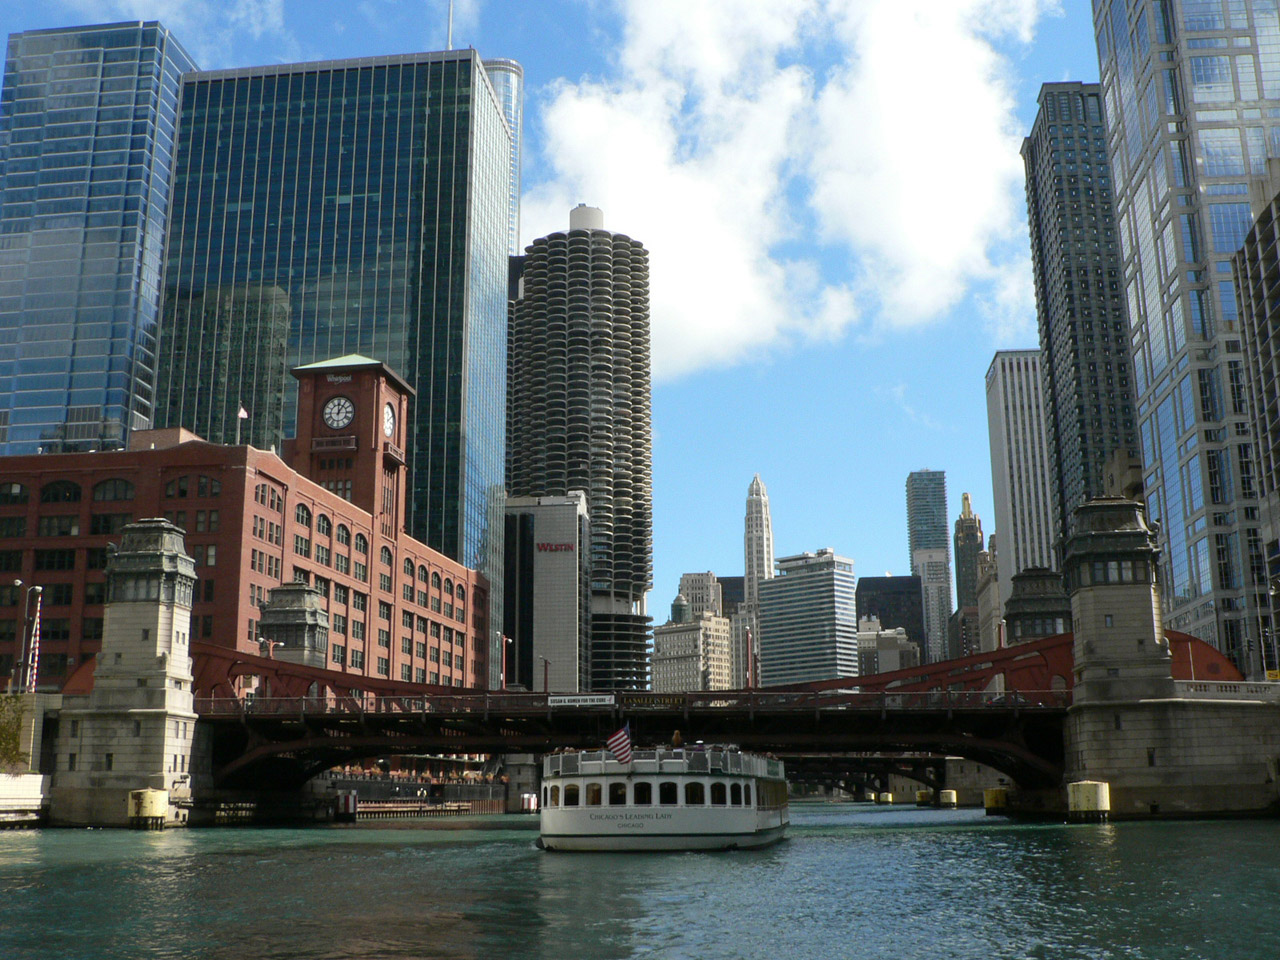 Chicago river architecture boat tour 09 30 2012 for Architecture tour chicago boat